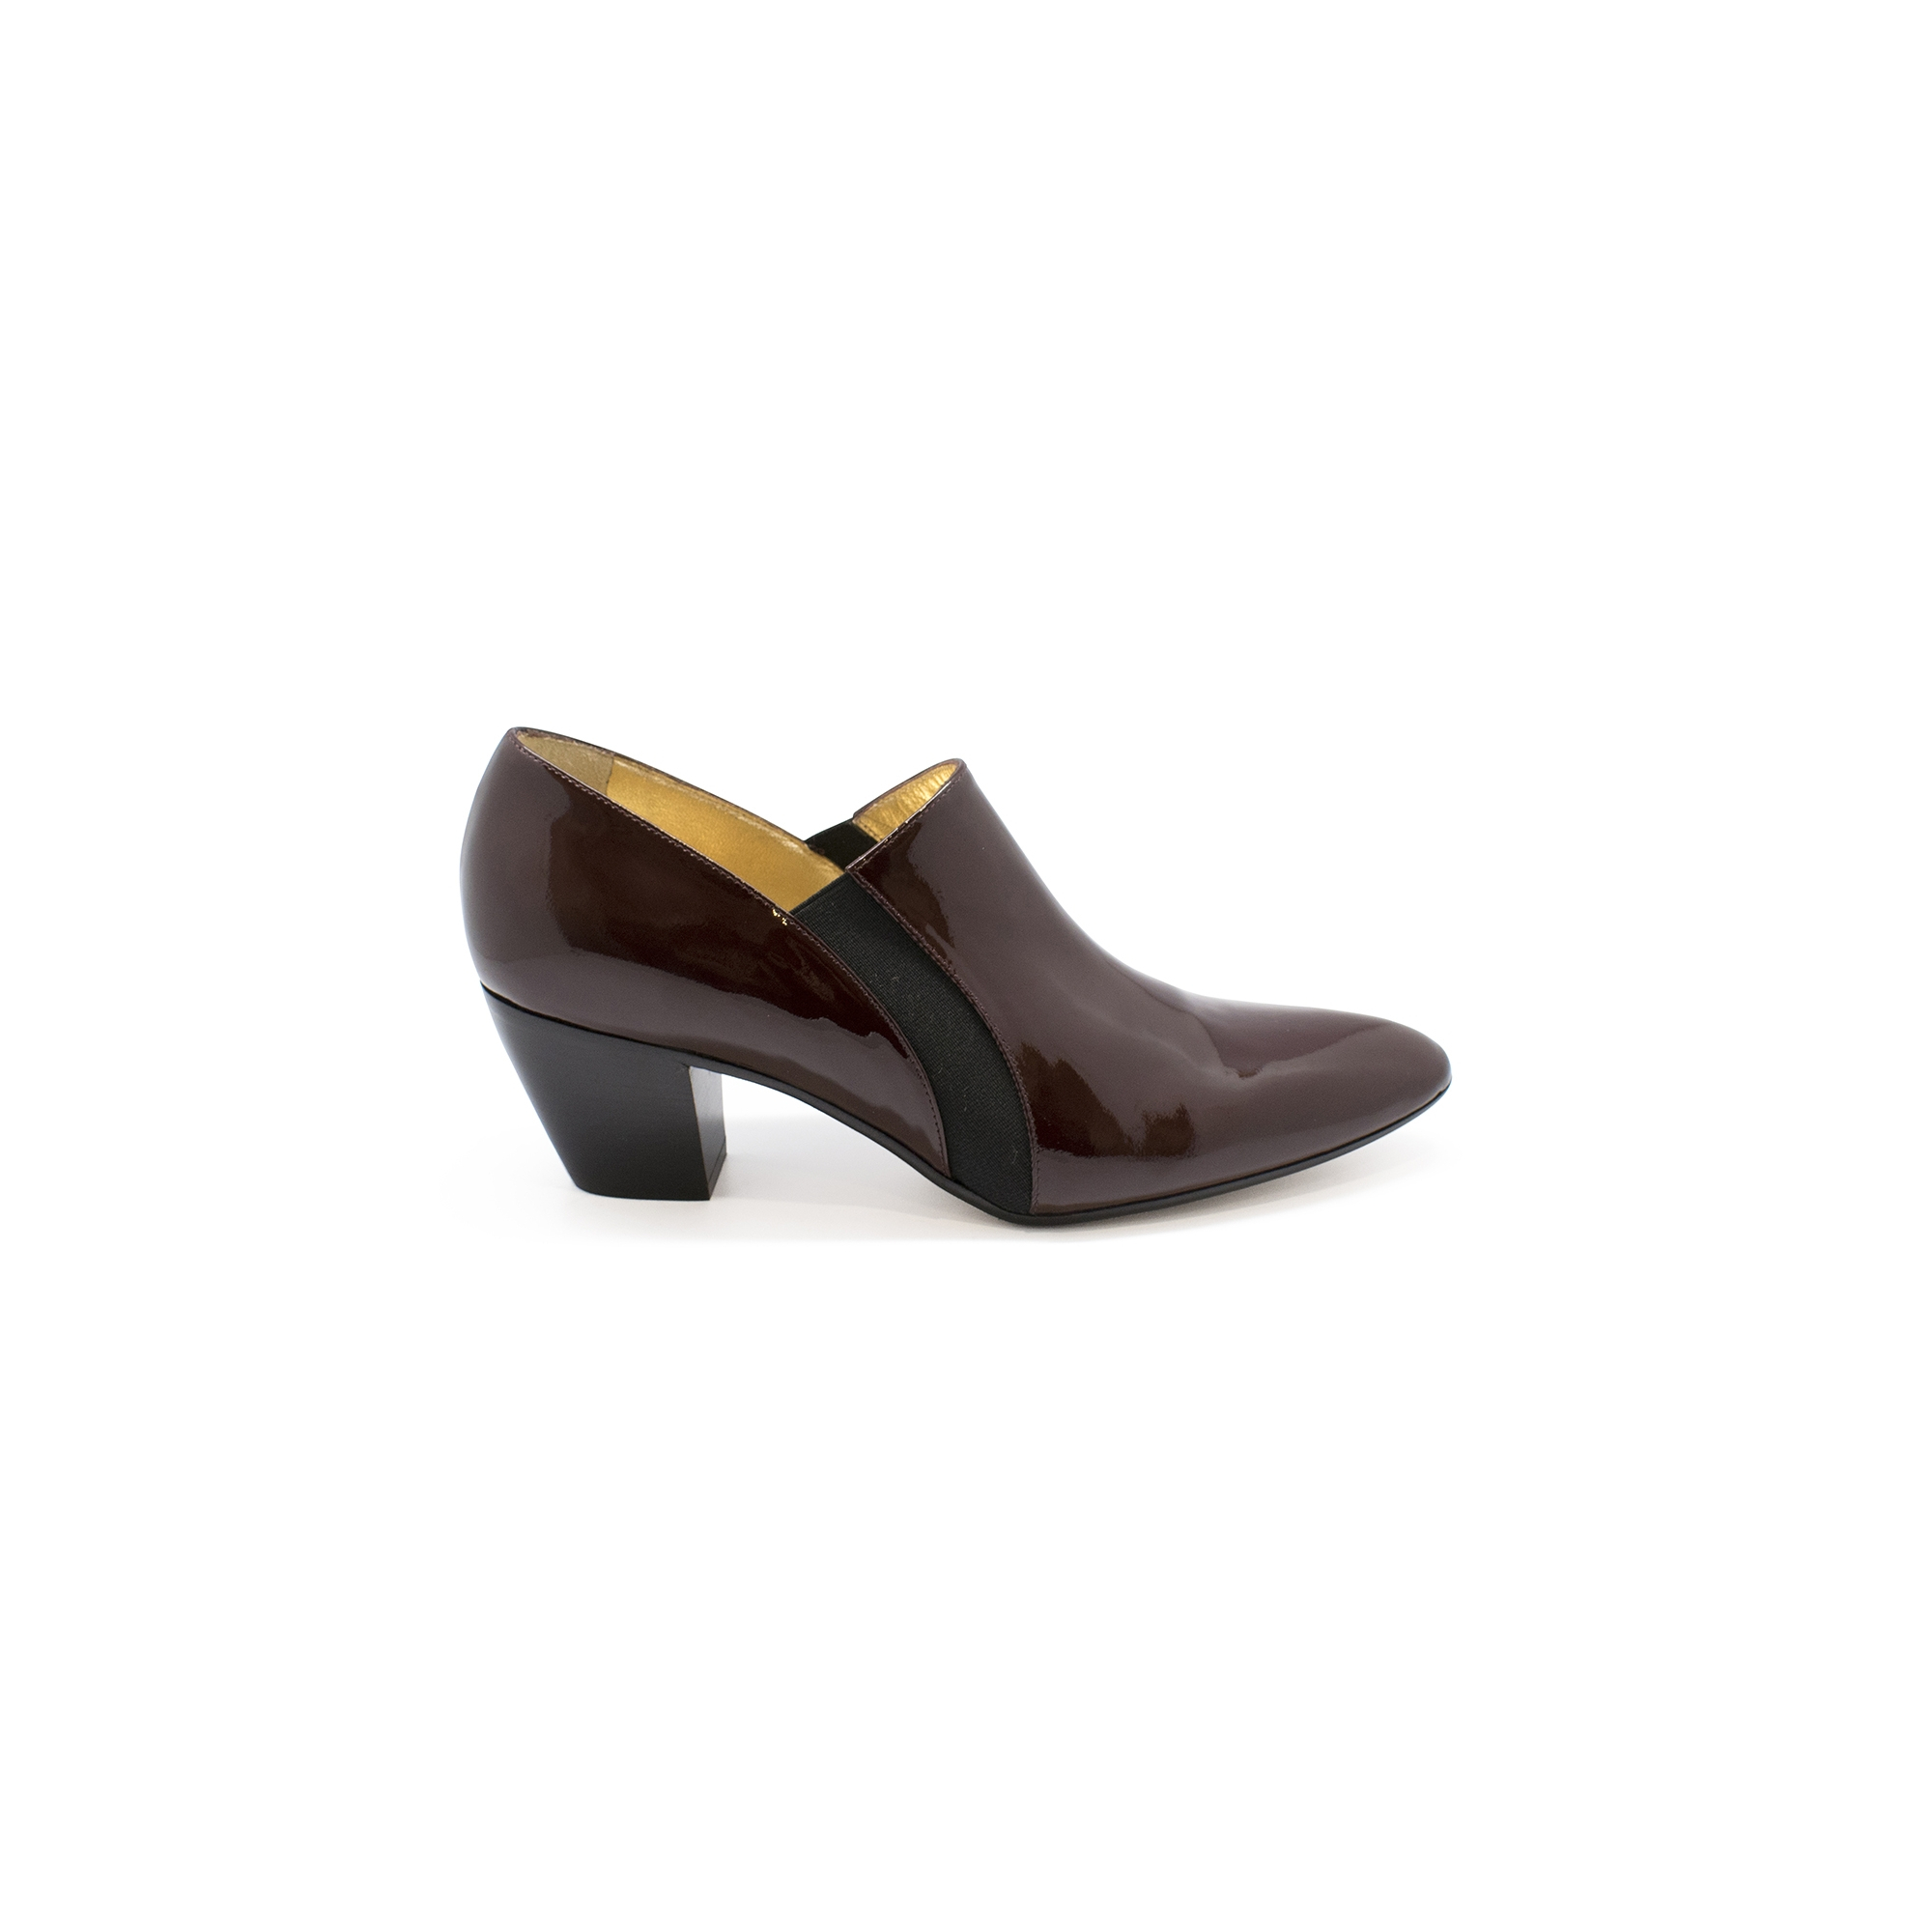 Walter Steiger Seventy Eight boots in bordeaux varnished leather